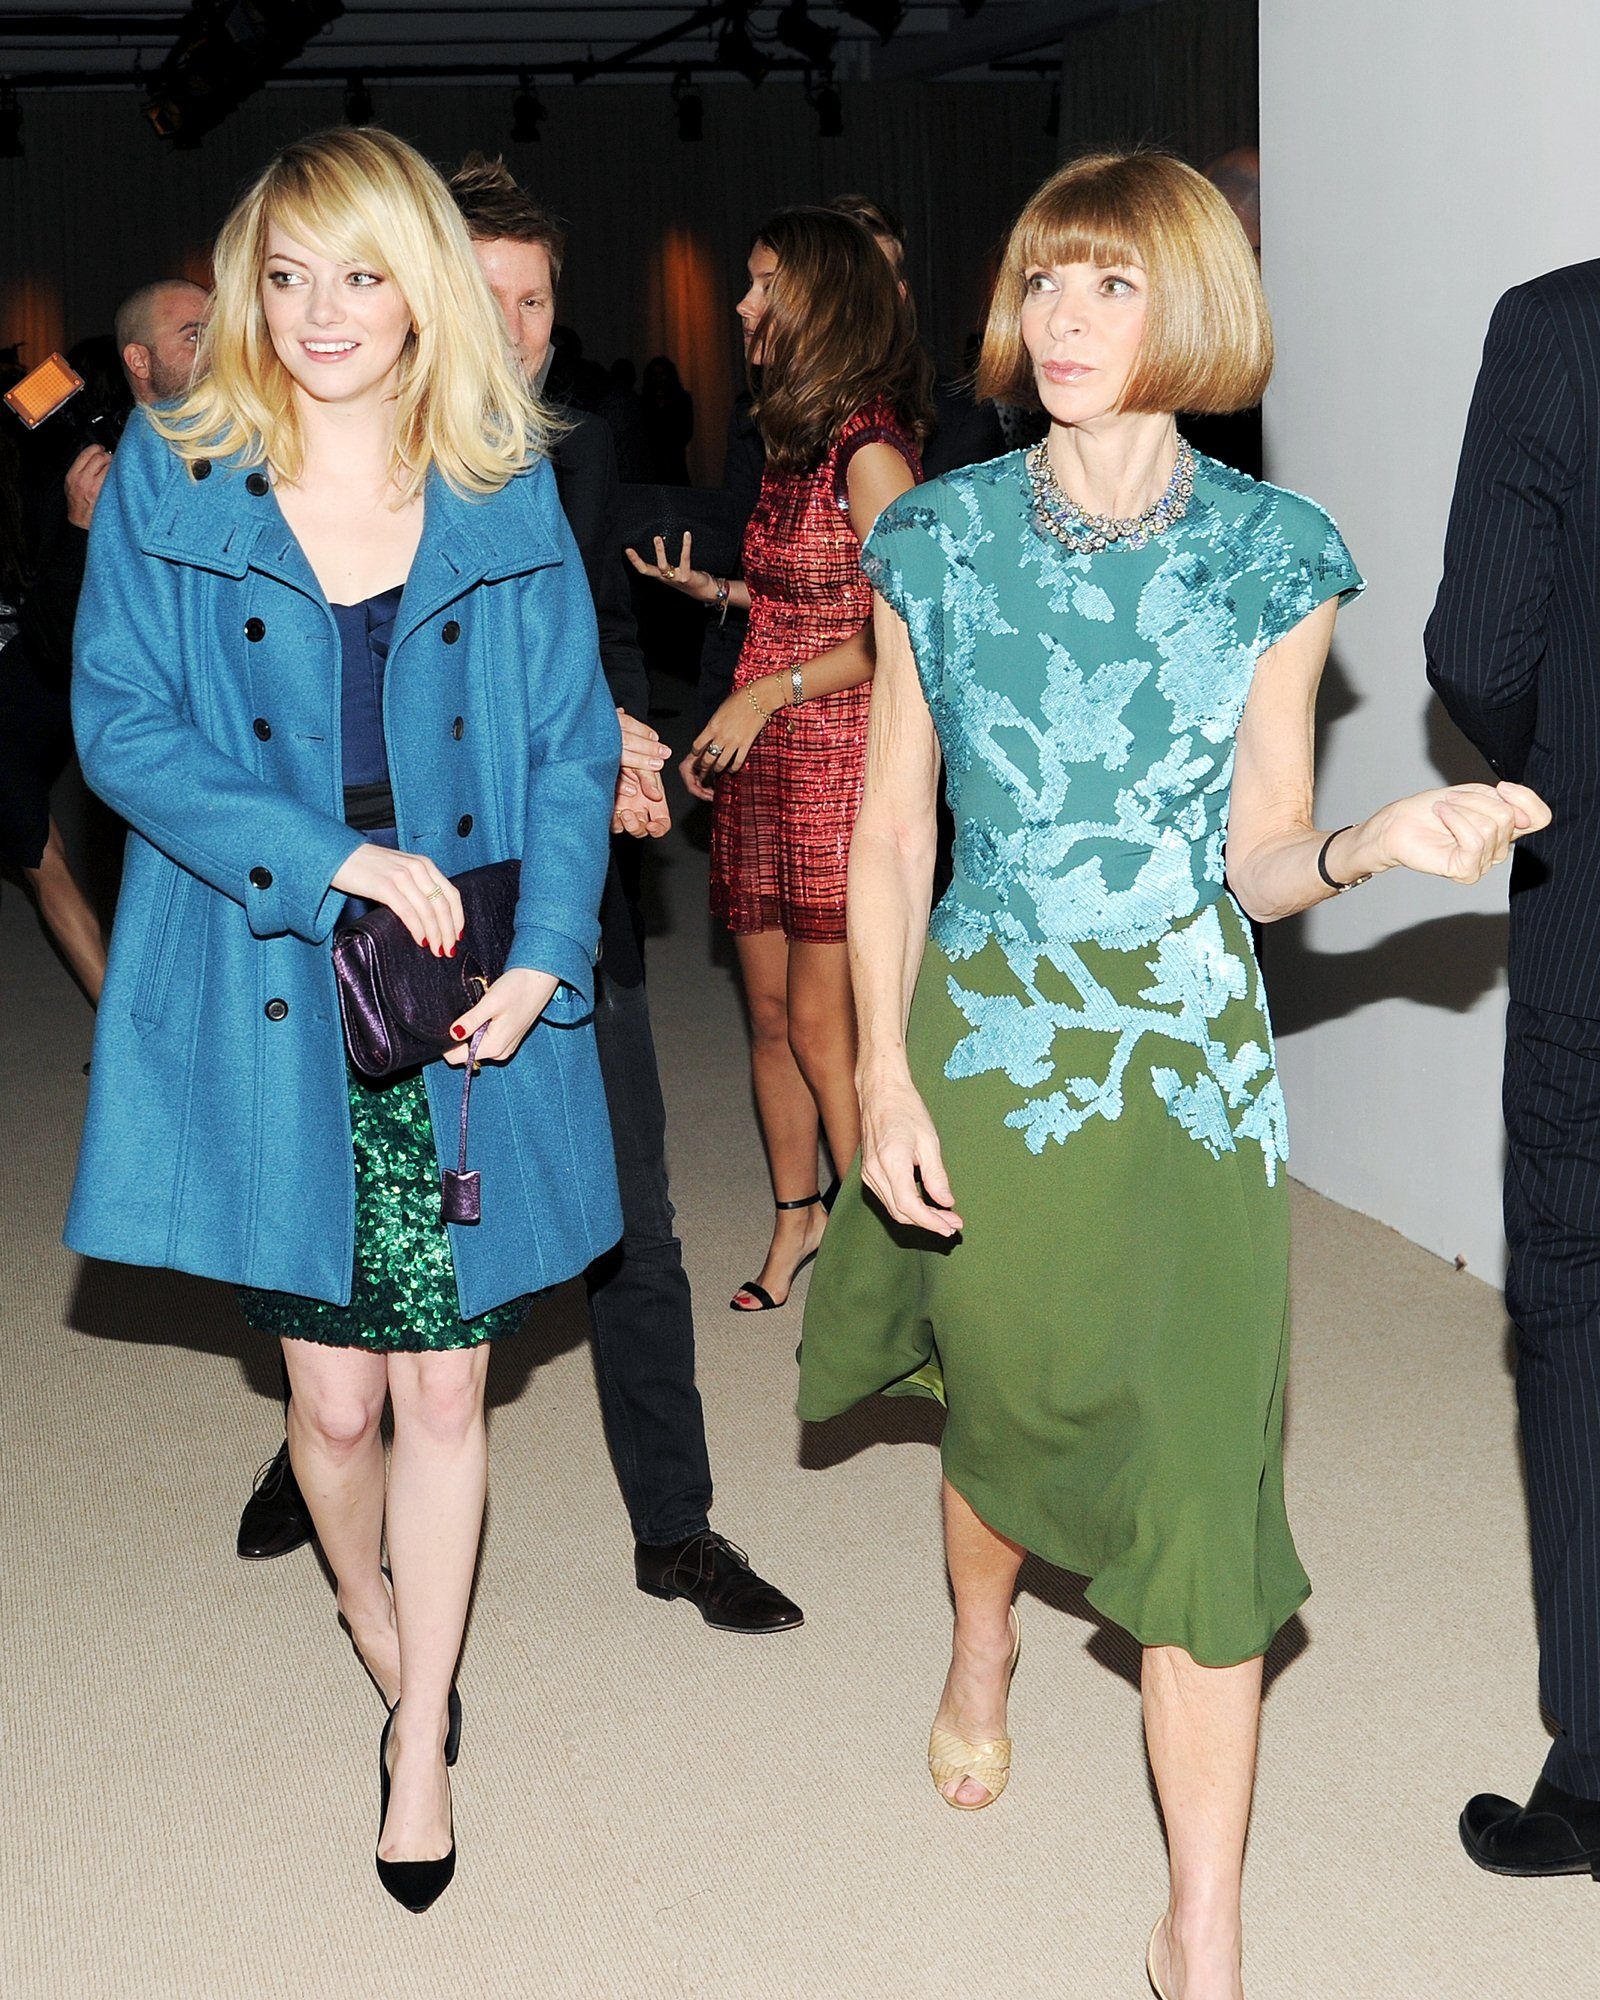 Emma Stone & Vogue Editor-in-Chief Anna Wintour